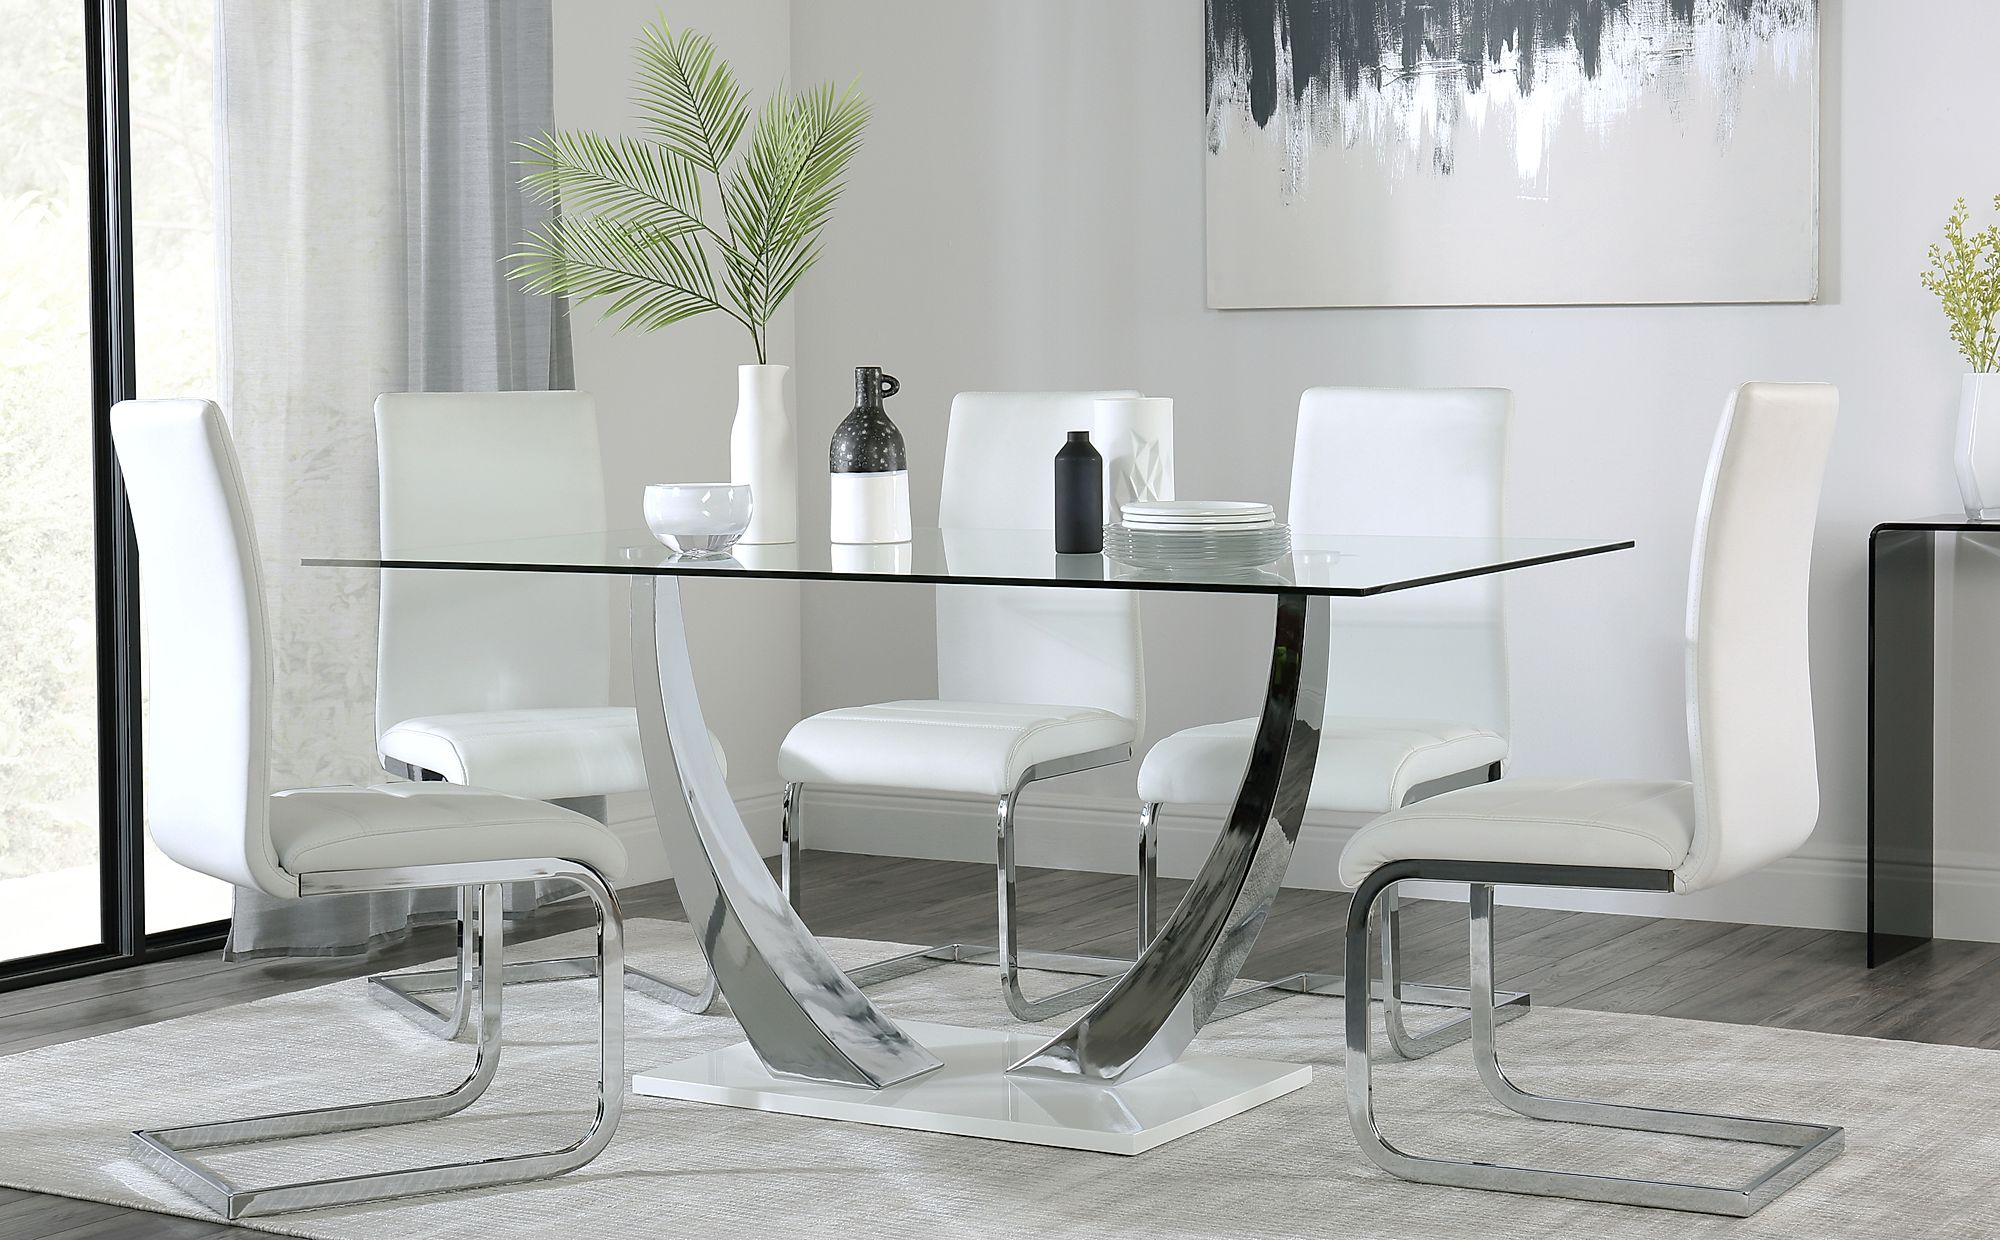 Furniture Choice & Peake Glass and Chrome Dining Table (White Gloss Base) - with 6 Perth White Leather Chairs